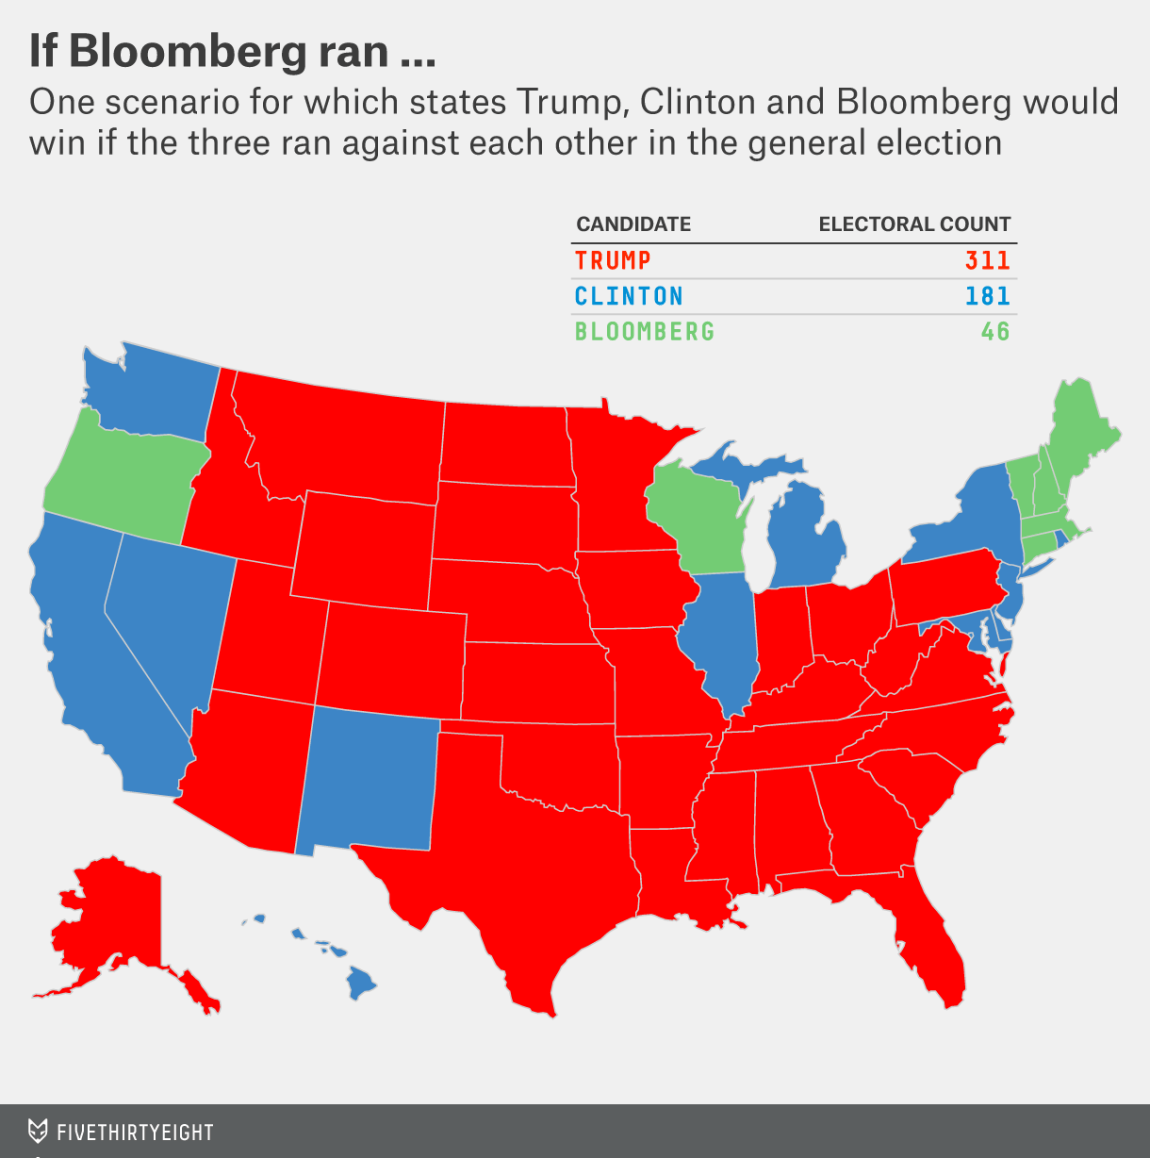 If Bloomberg ran, Election Night 2016